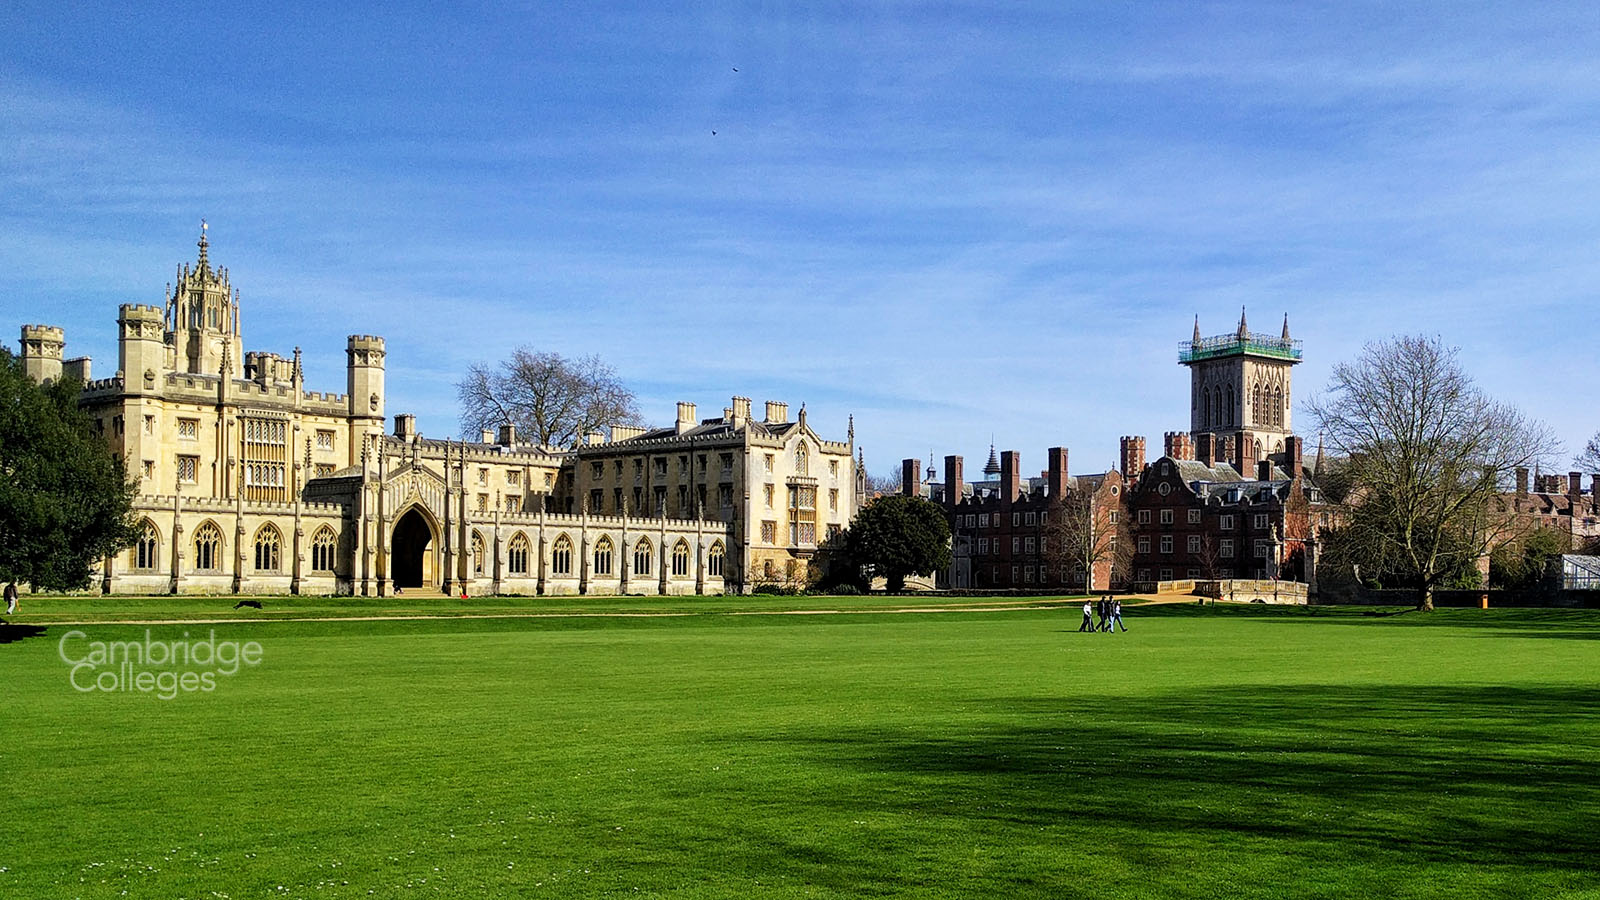 St Johns college Cambridge, Showing the New Court, old court and chapel tower